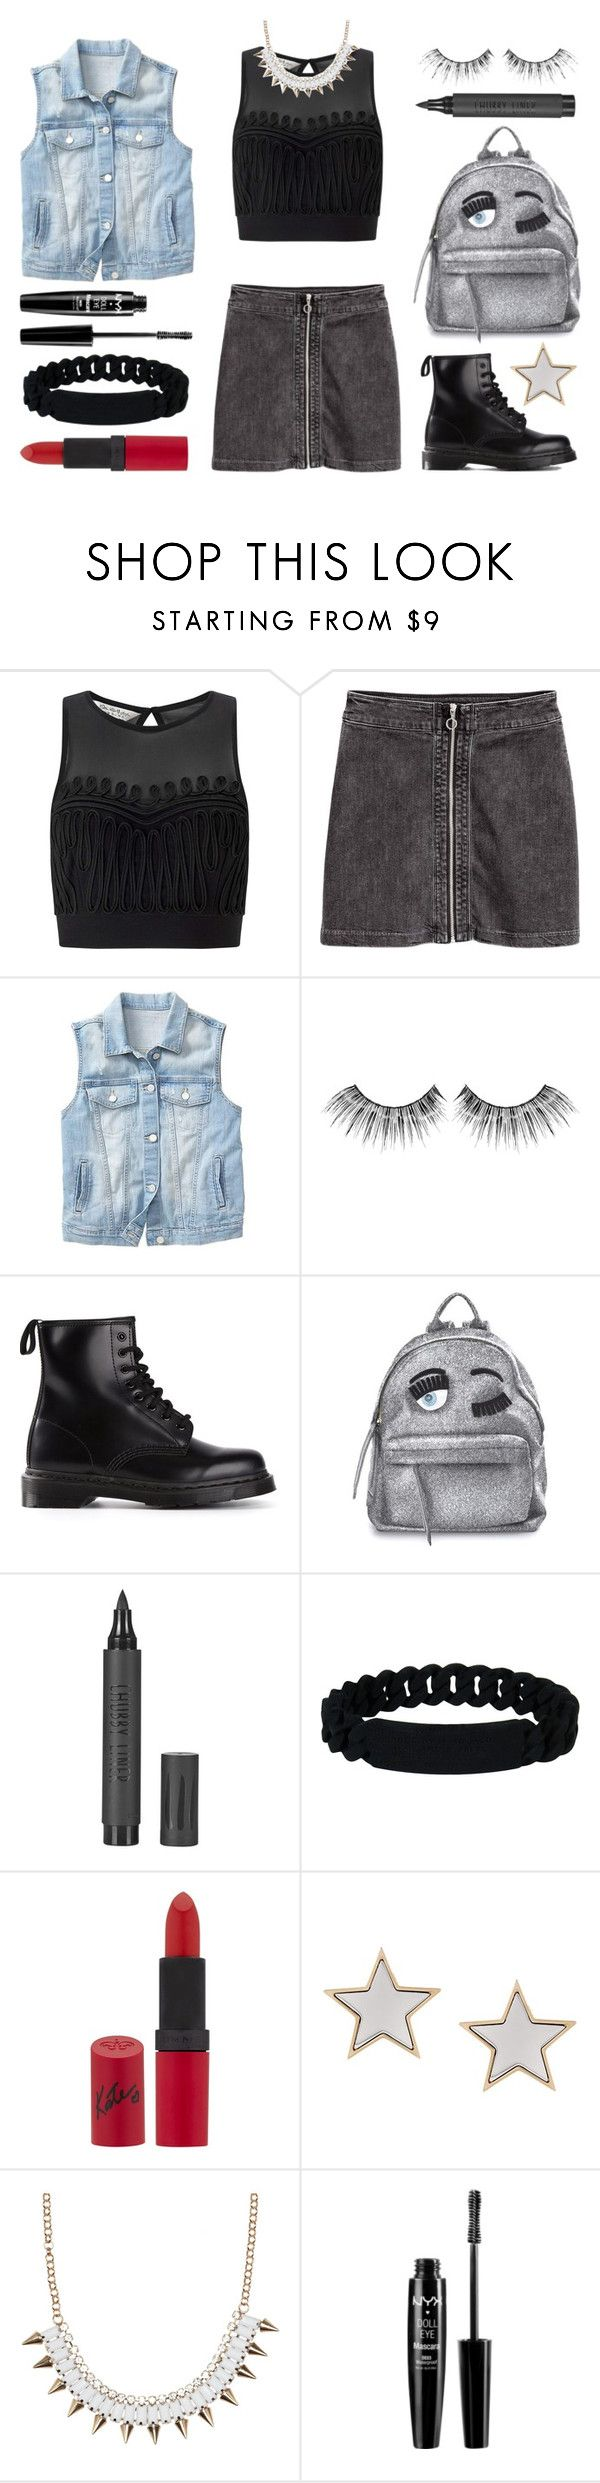 """#Street Style: Rocker Chic"" by sandycyh ❤ liked on Polyvore featuring Miss Selfridge, Gap, MAKE UP FOR EVER, Dr. Martens, Chiara Ferragni, Topshop, Marc by Marc Jacobs, Rimmel, Givenchy and NYX"